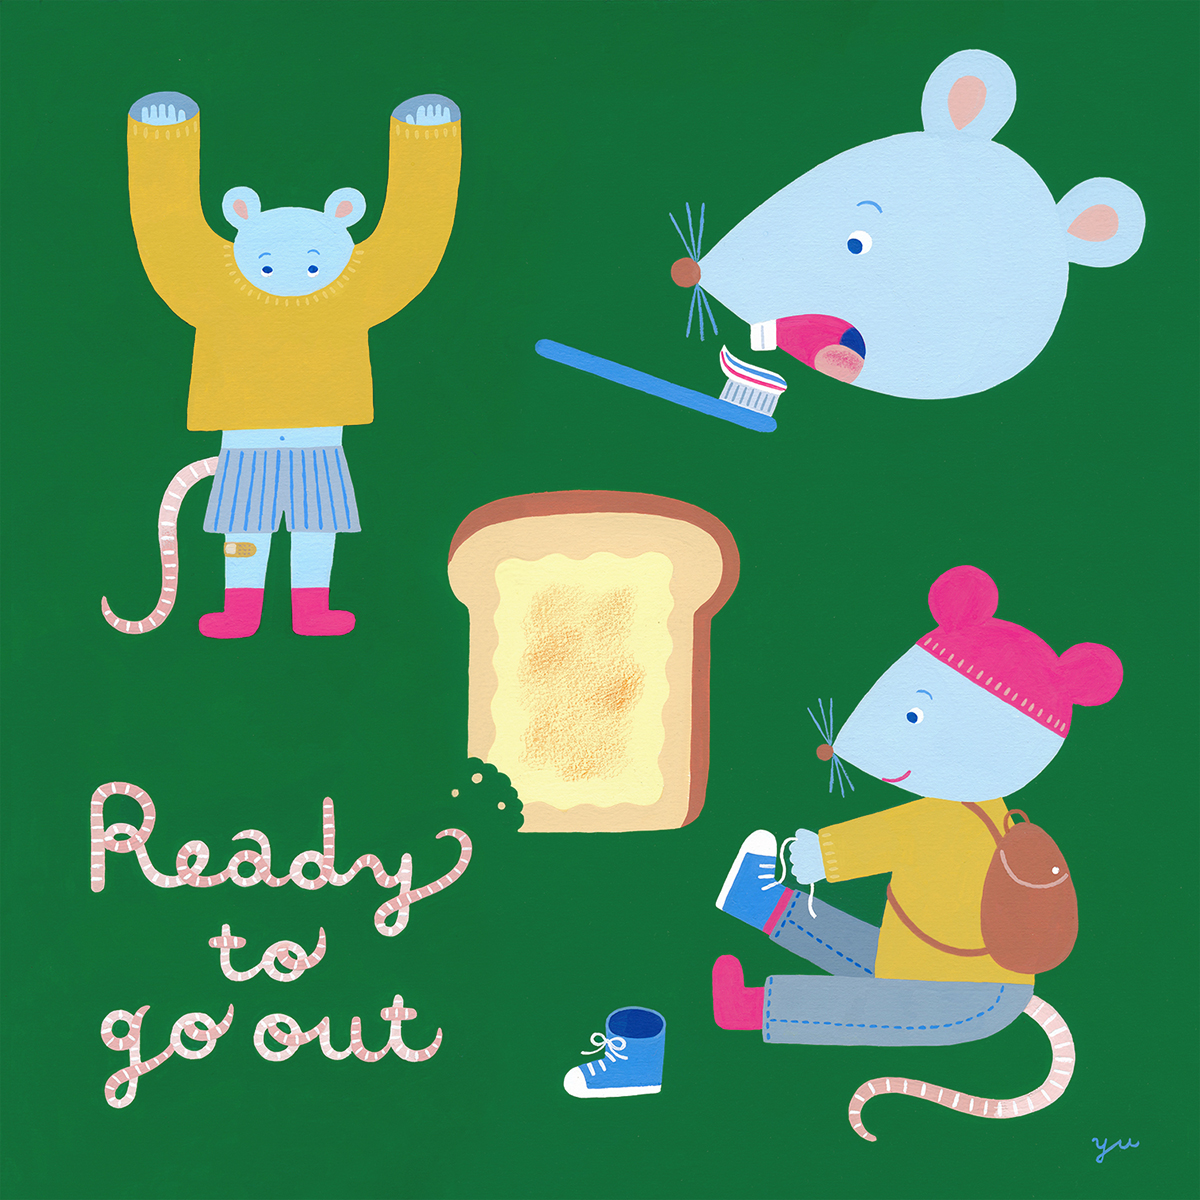 「Ready To Go Out おでかけのじゅんび」(「12人の贈り物展2019」展示作品)